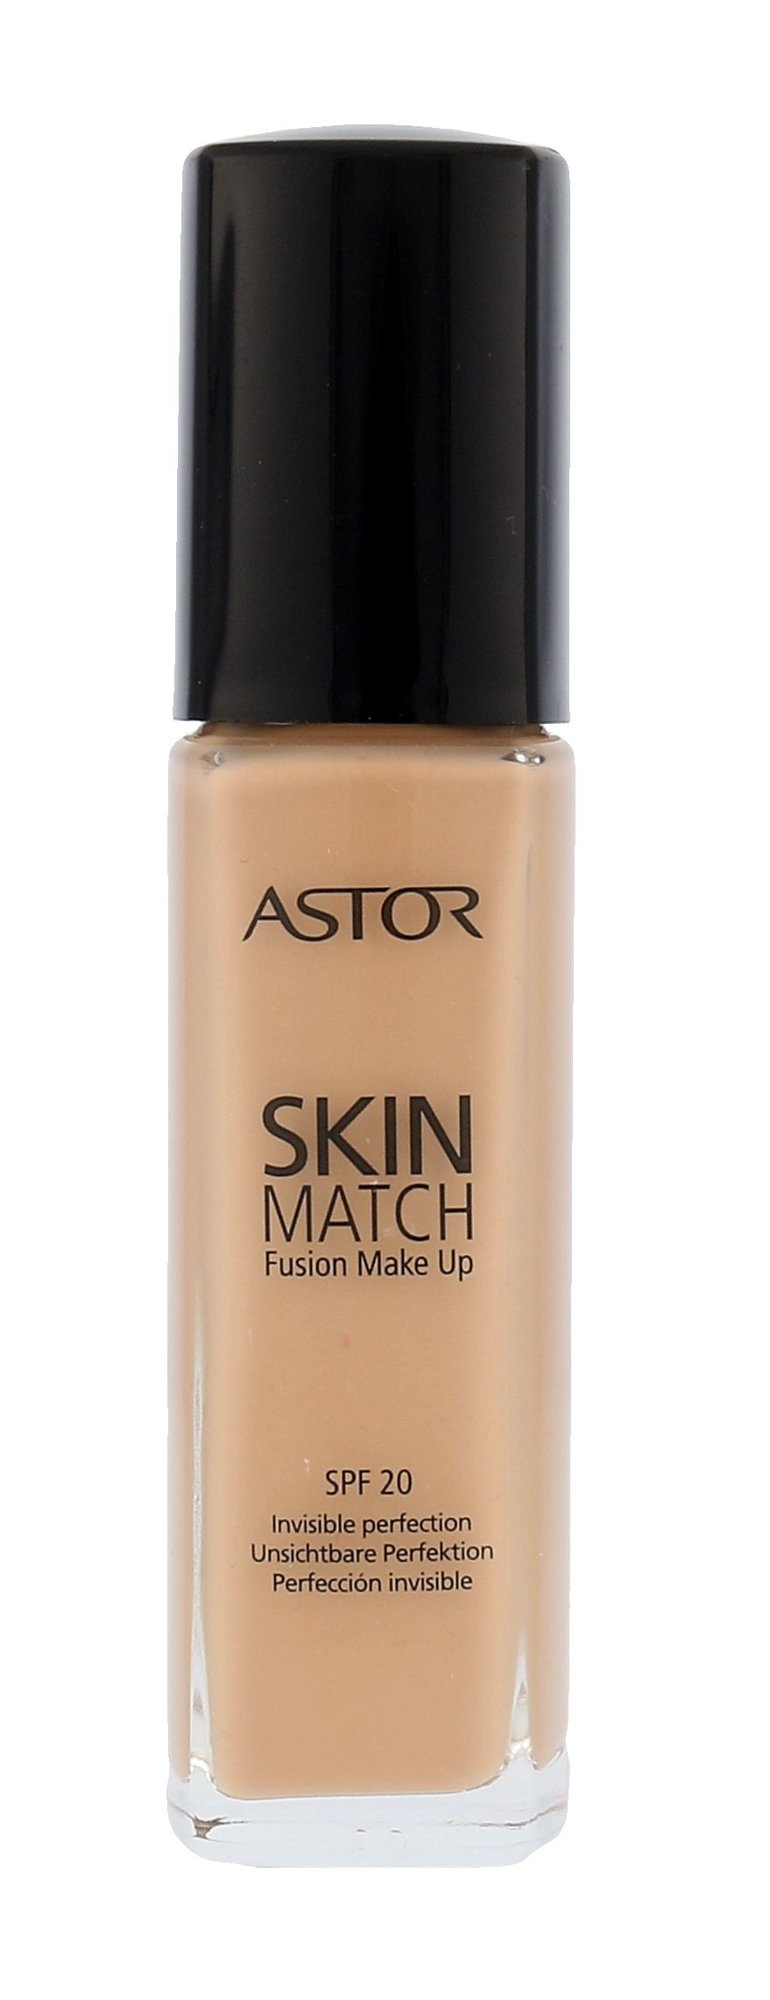 ASTOR Skin Match Cosmetic 30ml 103 Porcelain